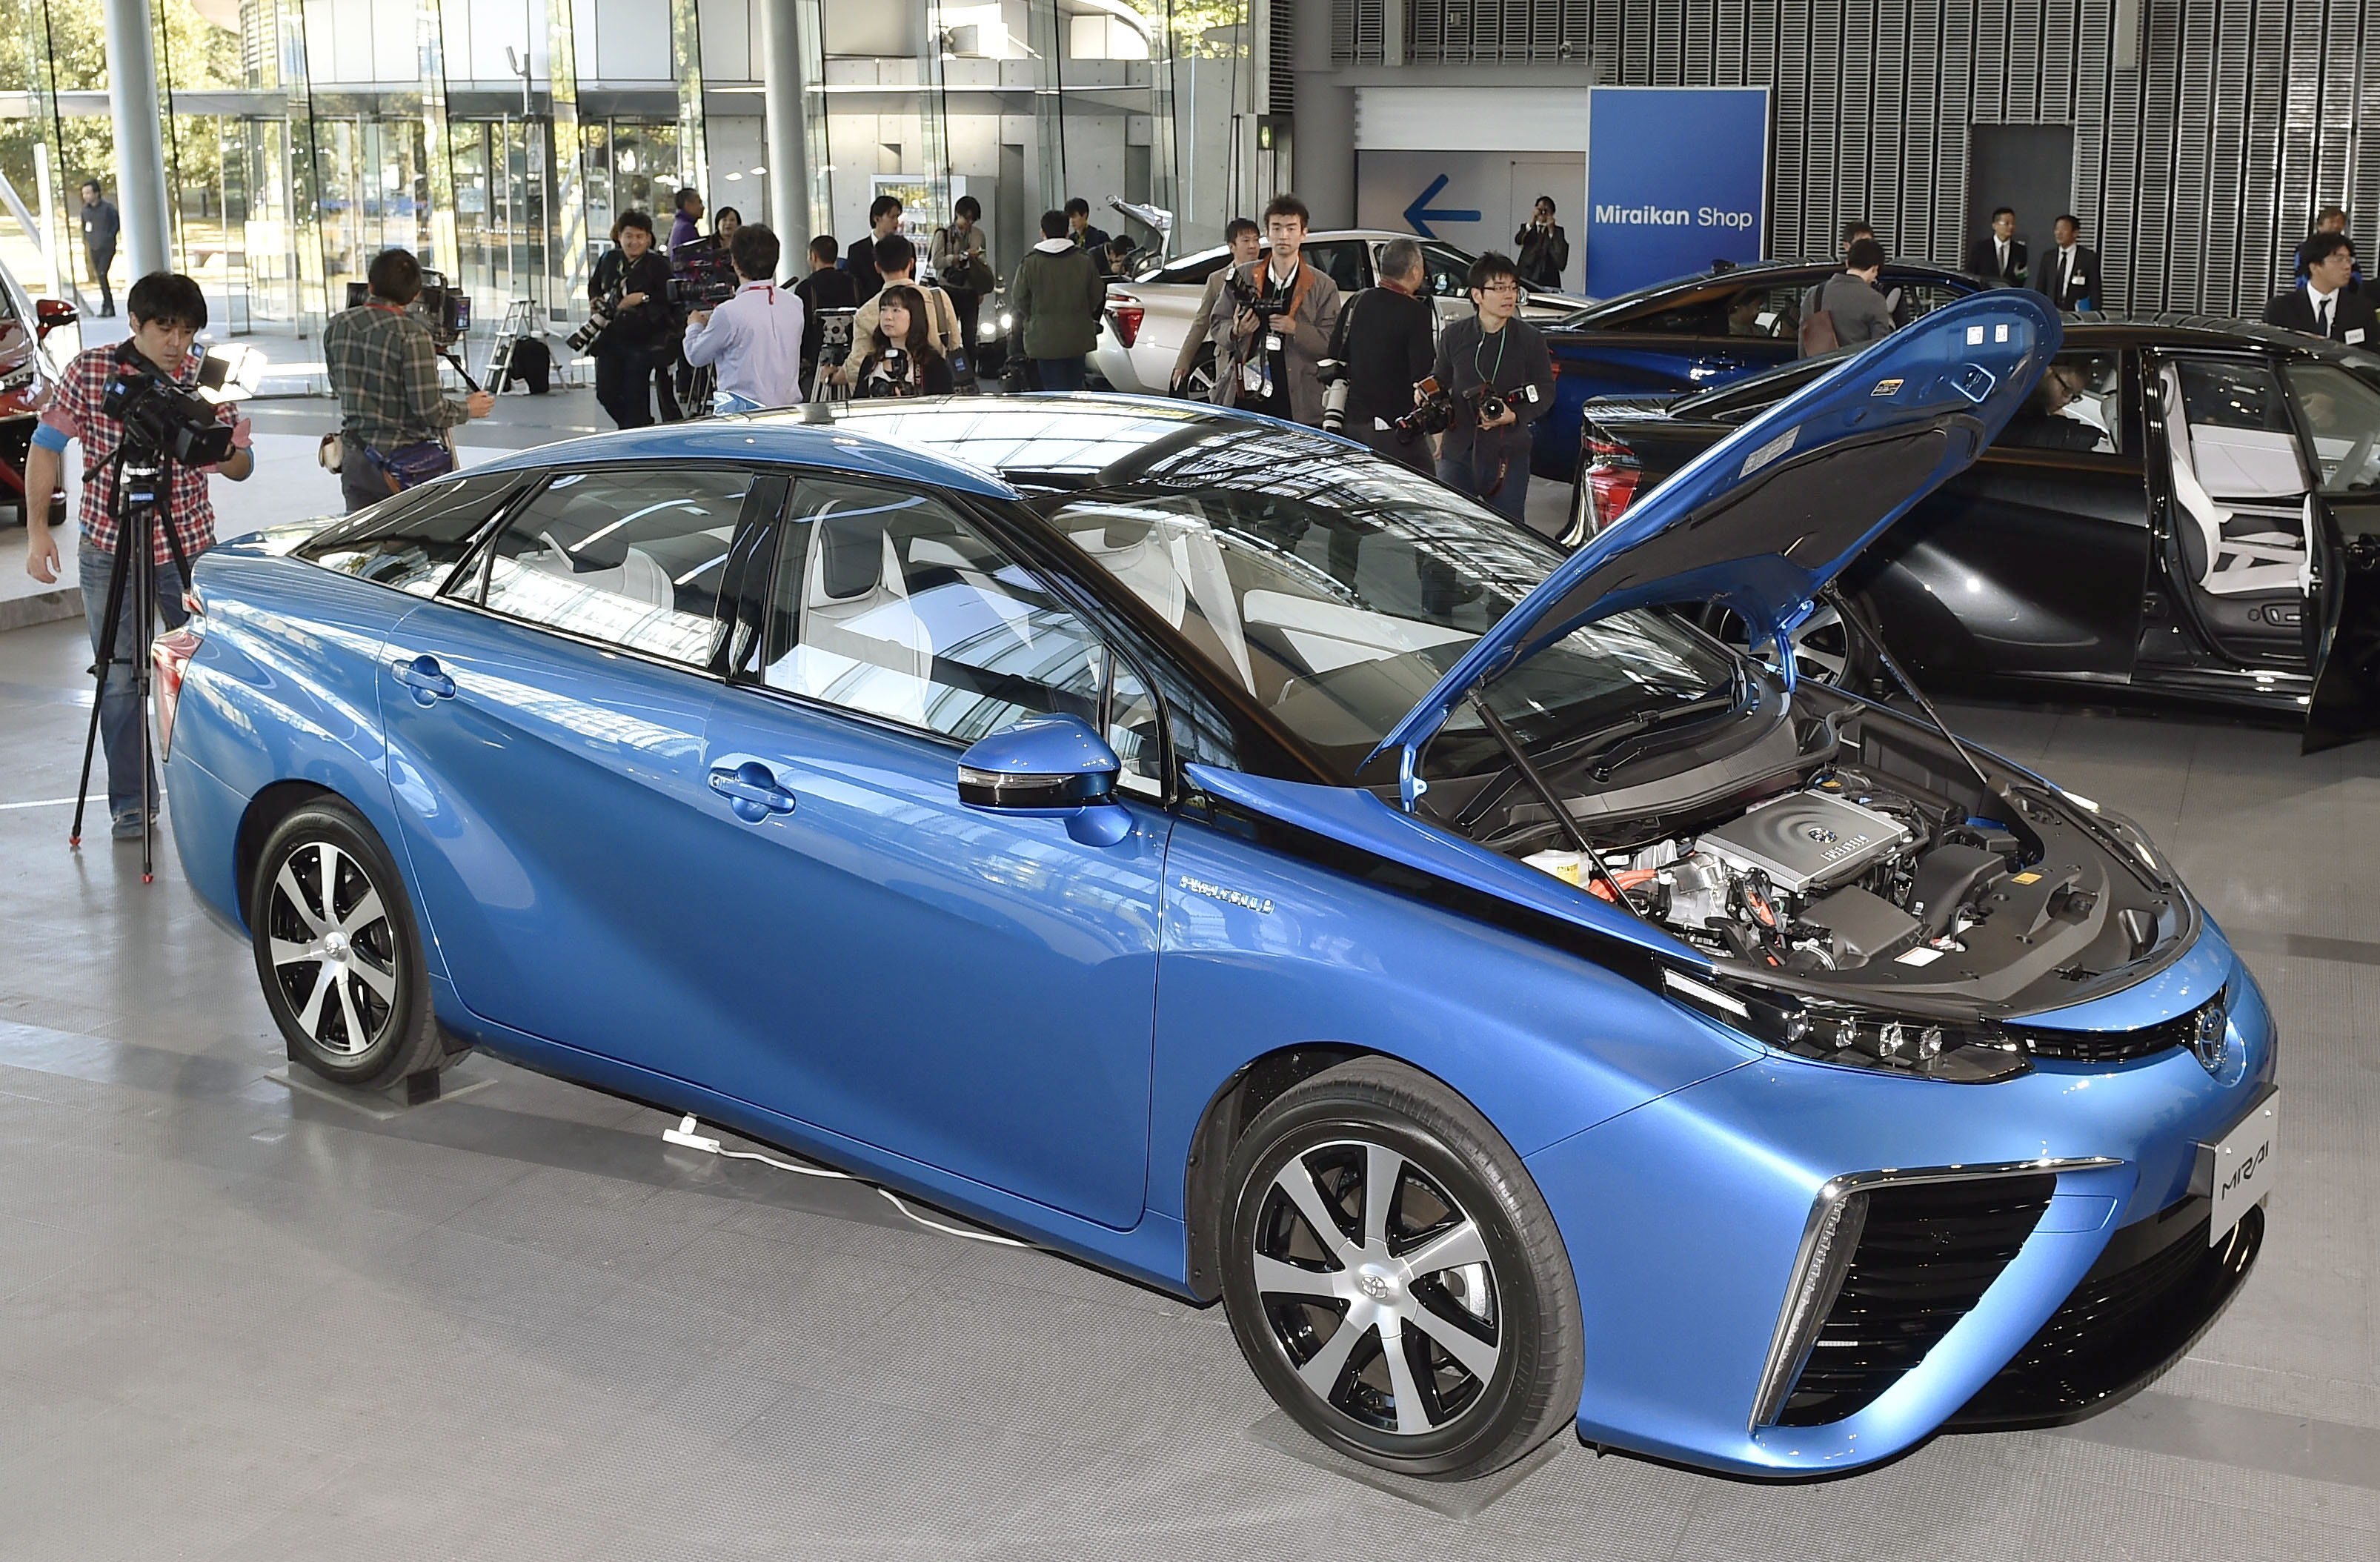 Toyota Motor Corp.'s new Mirai vehicle is displayed at the Miraikan ...